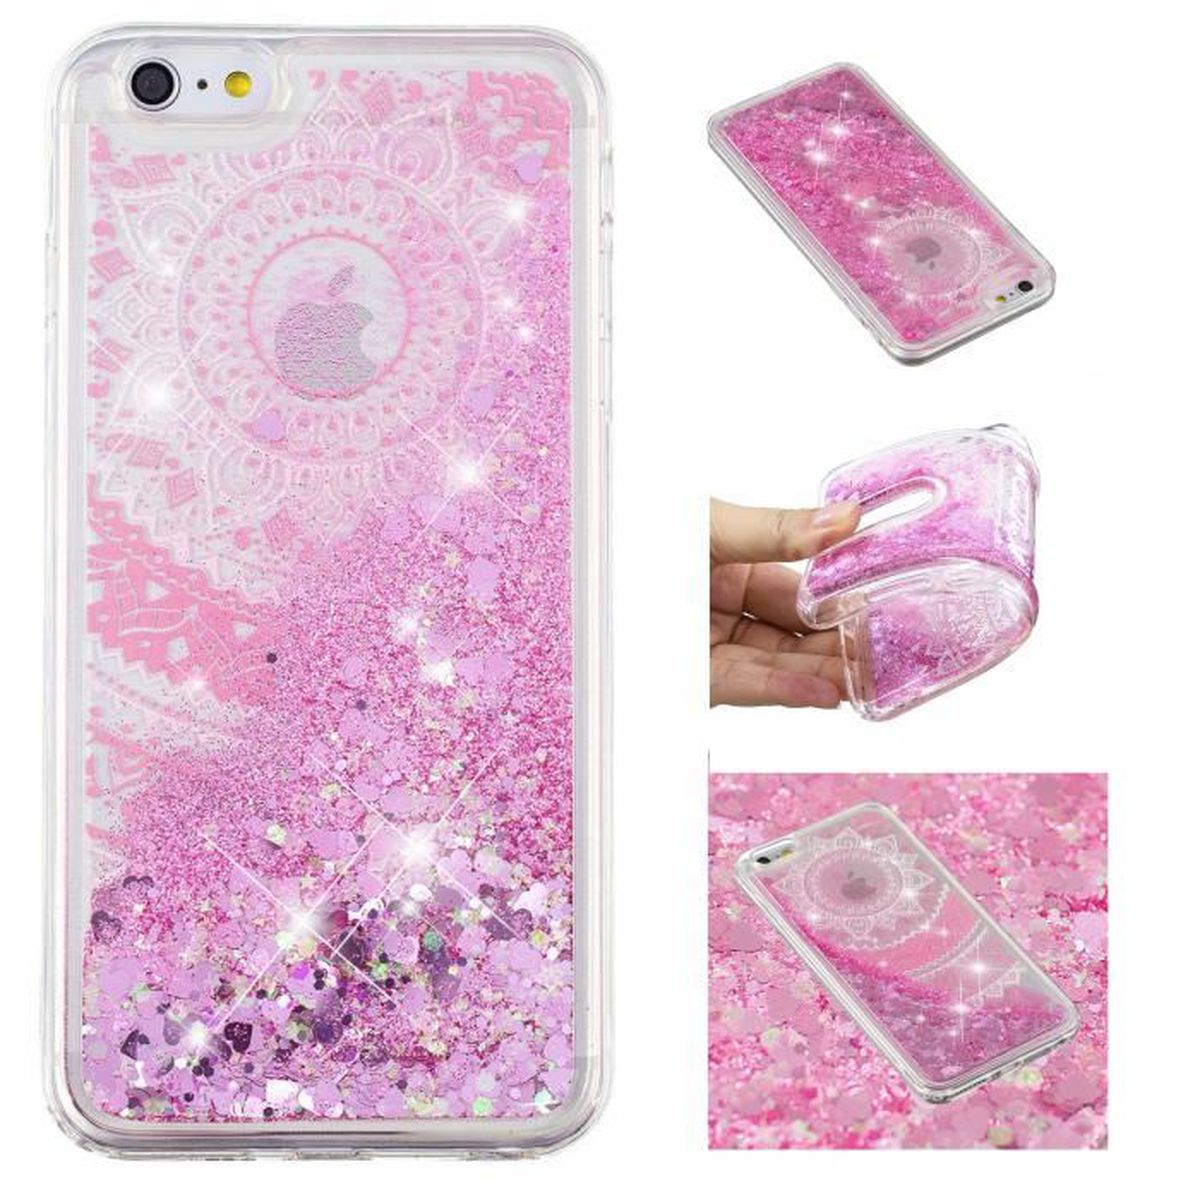 coque iphone 5 strass paillette